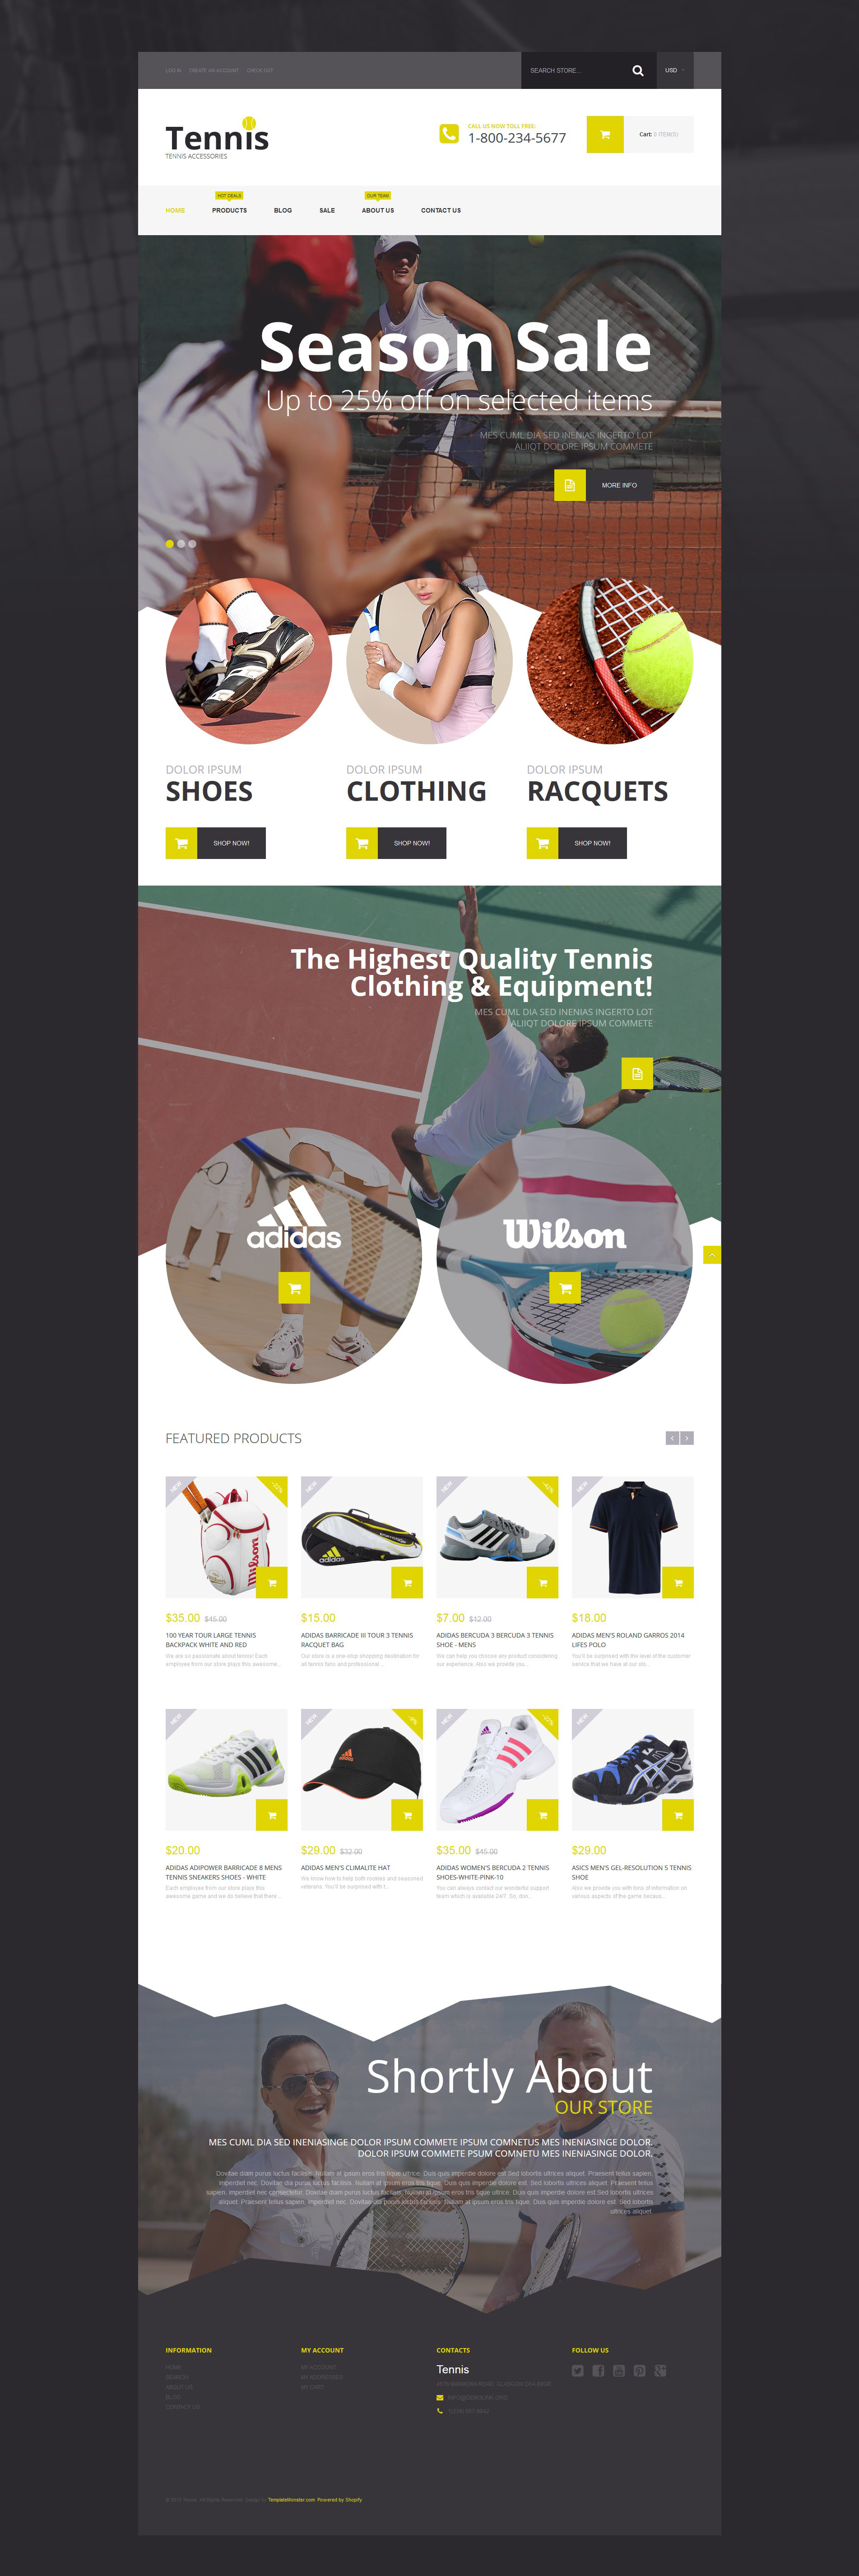 The Tennis Club Shopify Design 54548, one of the best Shopify themes of its kind (sport), also known as tennis club Shopify template, sport Shopify template, racket Shopify template, tennis Shopify template, shoes Shopify template, apparel Shopify template, string Shopify template, bags Shopify template, accessories Shopify template, sport Shopify template, racquet Shopify template, ball Shopify template, bags Shopify template, strings Shopify template, grips Shopify template, braces Shopify template, fitness Shopify template, court store Shopify template, shop and related with tennis club, sport, racket, tennis, shoes, apparel, string, bags, accessories, sport, racquet, ball, bags, strings, grips, braces, fitness, court store, shop, etc.